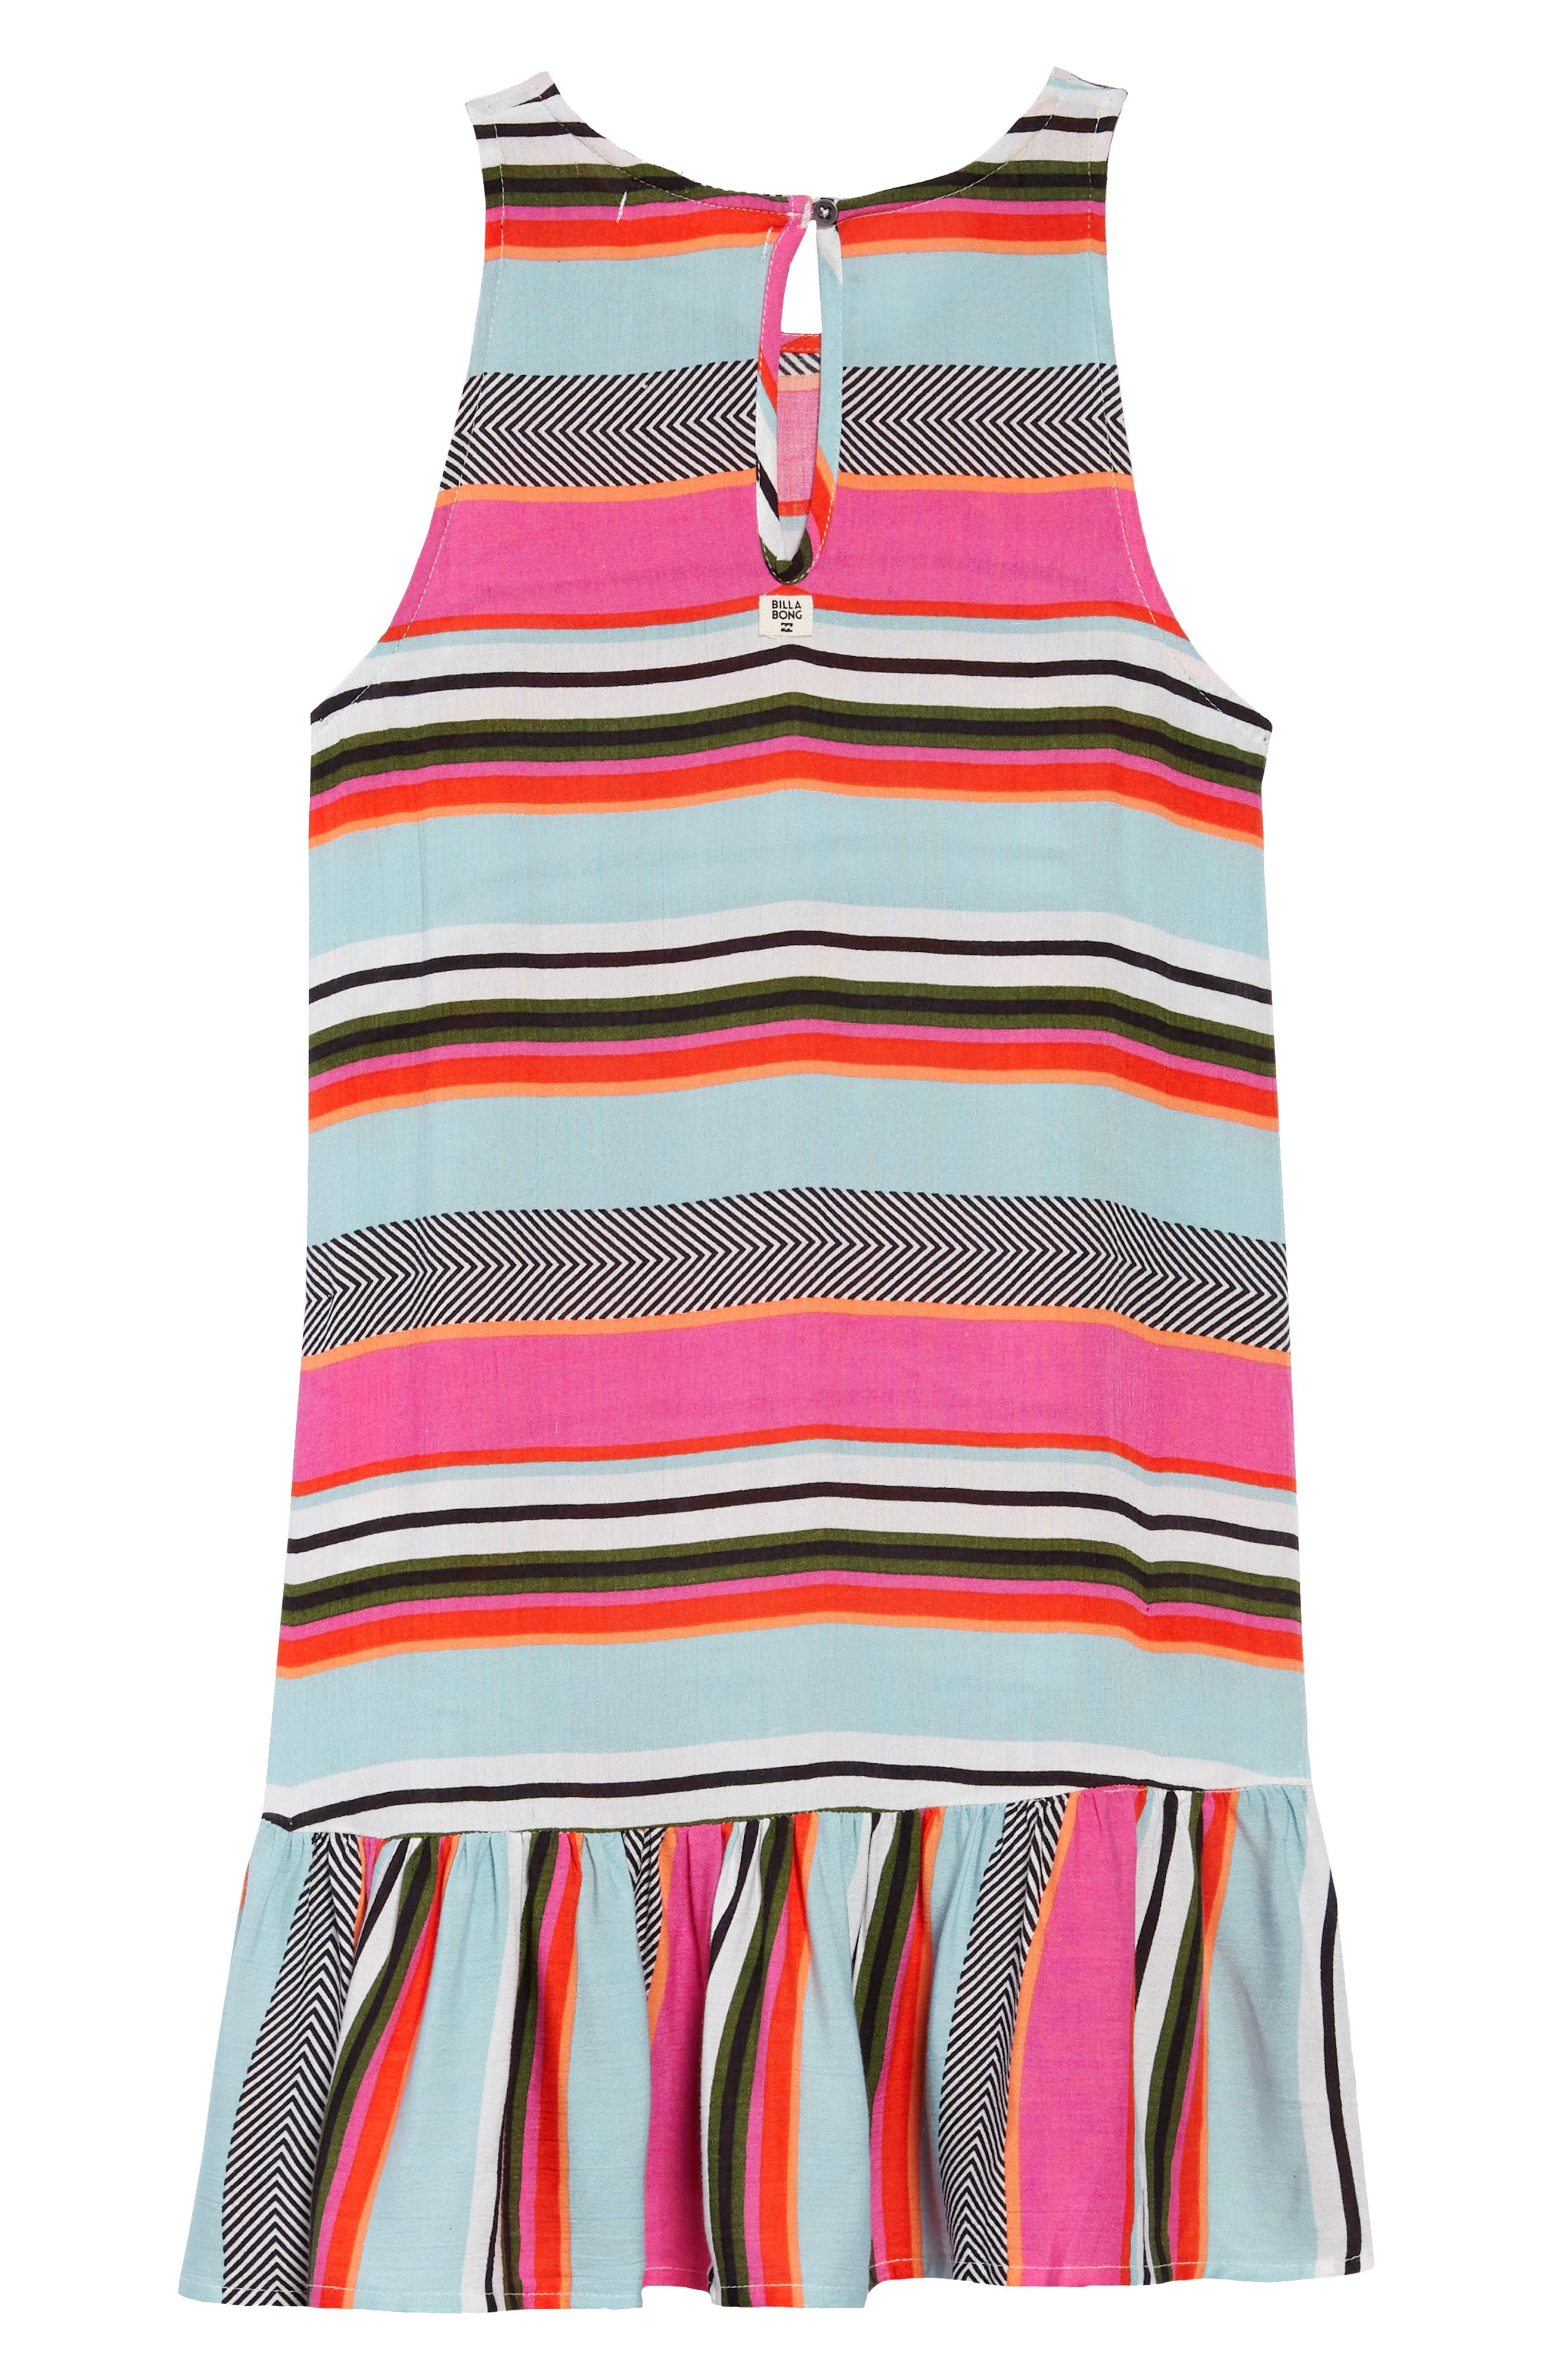 Universal Love Stripe Dress,                             Alternate thumbnail 2, color,                             Beach Glass